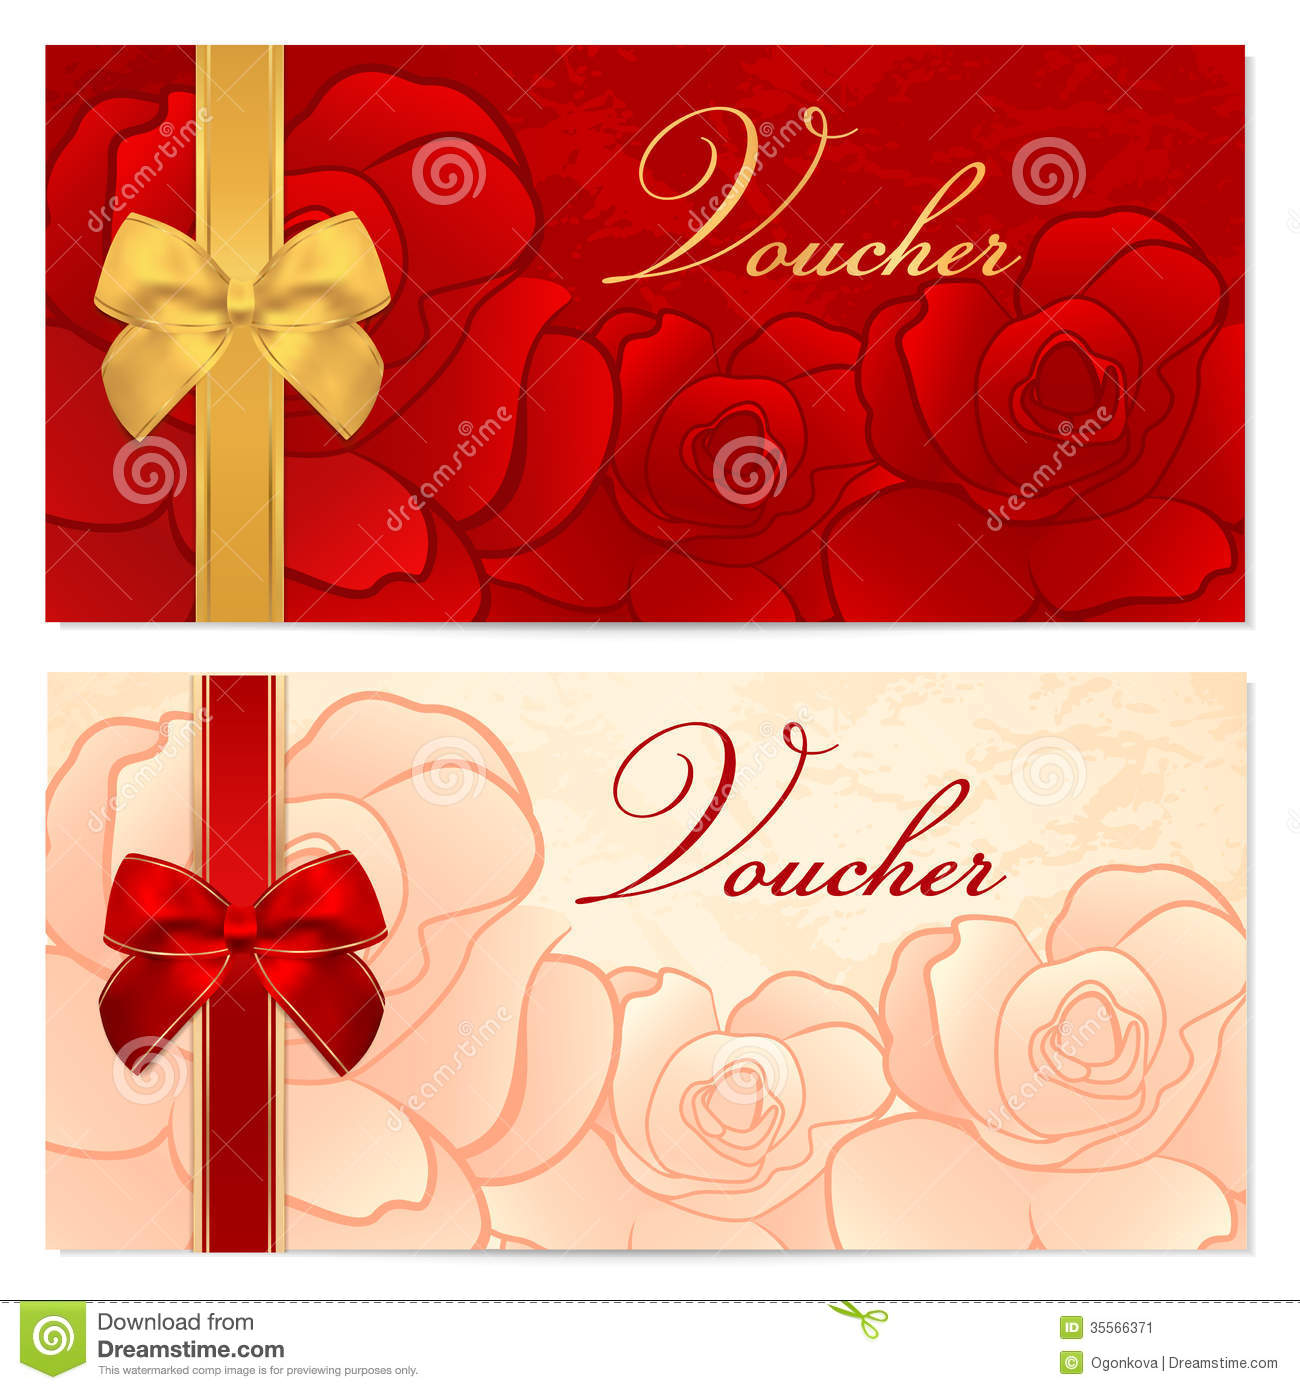 Gift Certificate Voucher Coupon Template Bow F Image – Gift Coupon Template